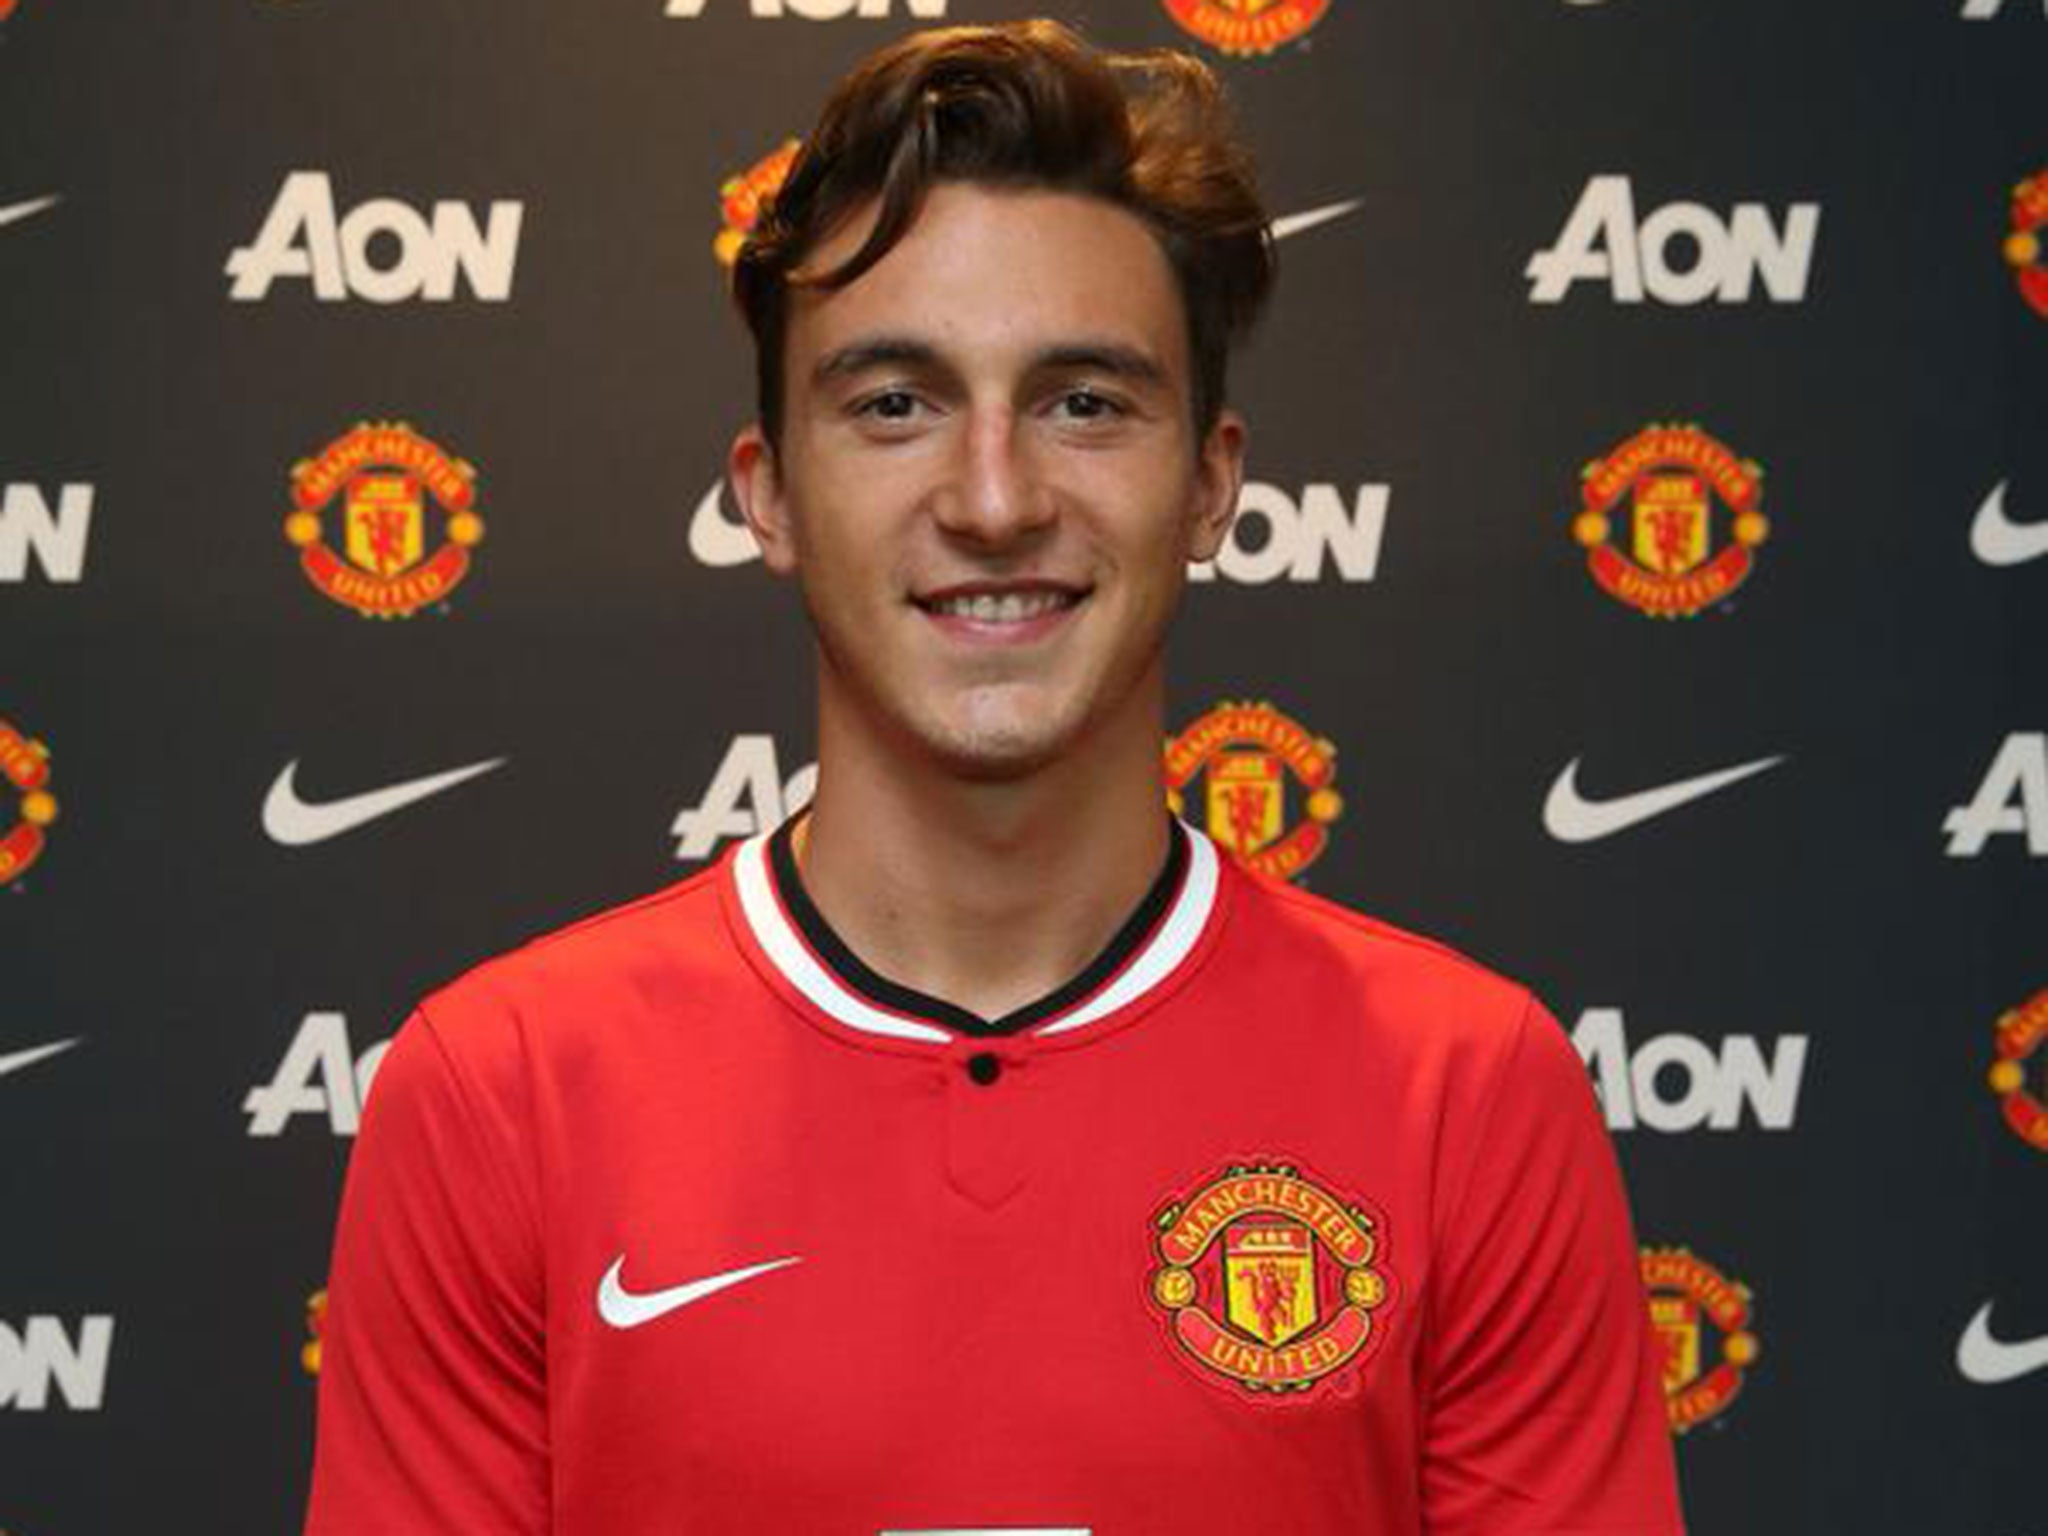 Matteo Darmian joins Manchester United: Torino confirm deal completed on same day as fee agreed for Bastian Schweinsteiger